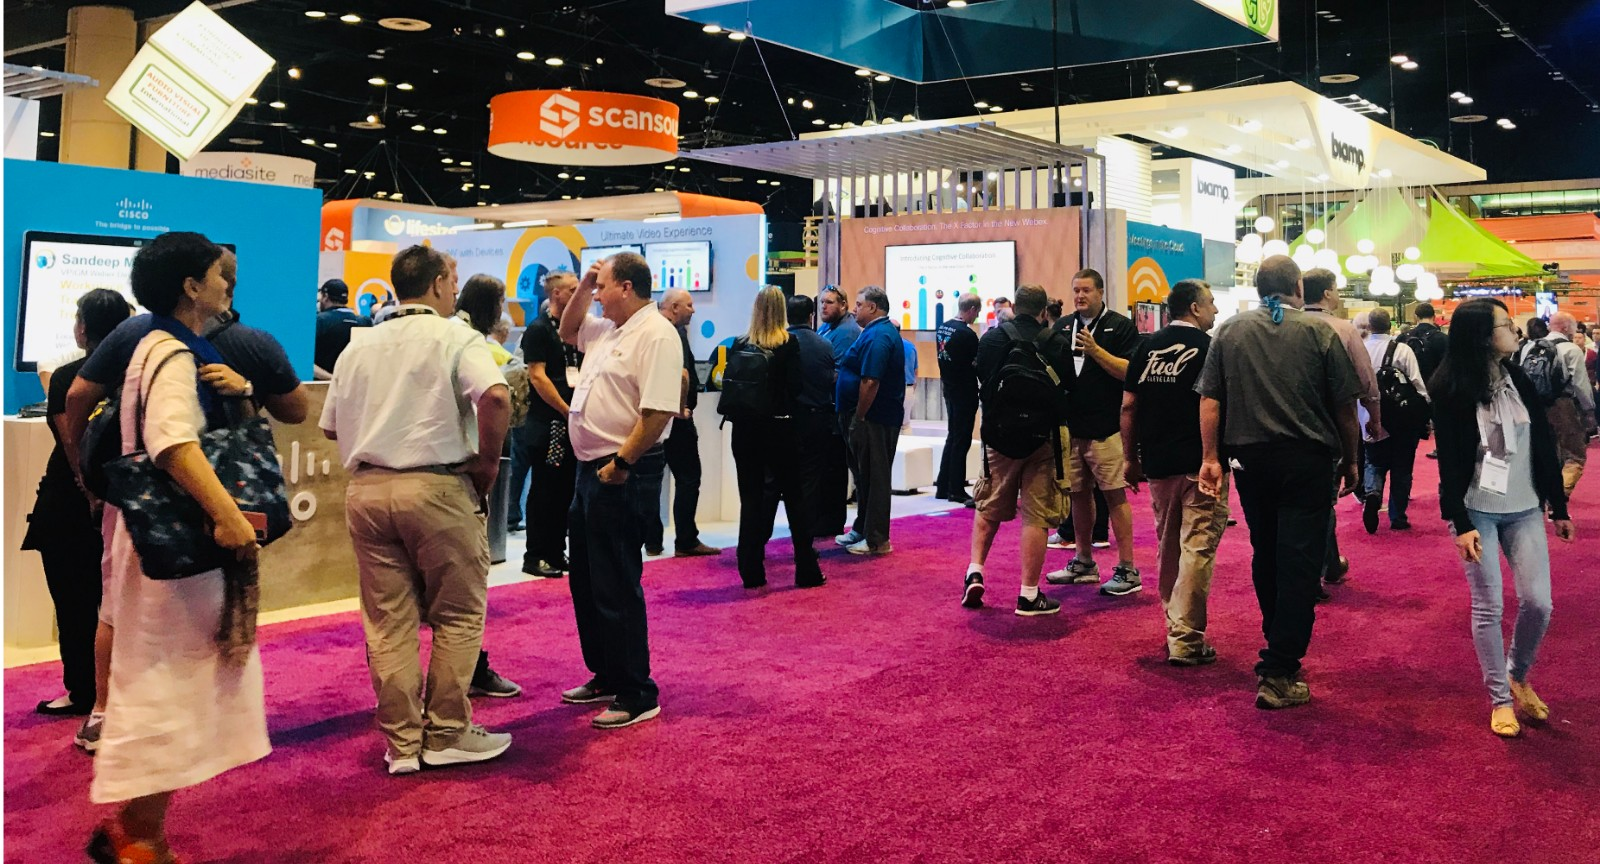 Ugee-Ugee Exhibited At June 12 -14, 2019 At The Orlando Convention Center ,-1